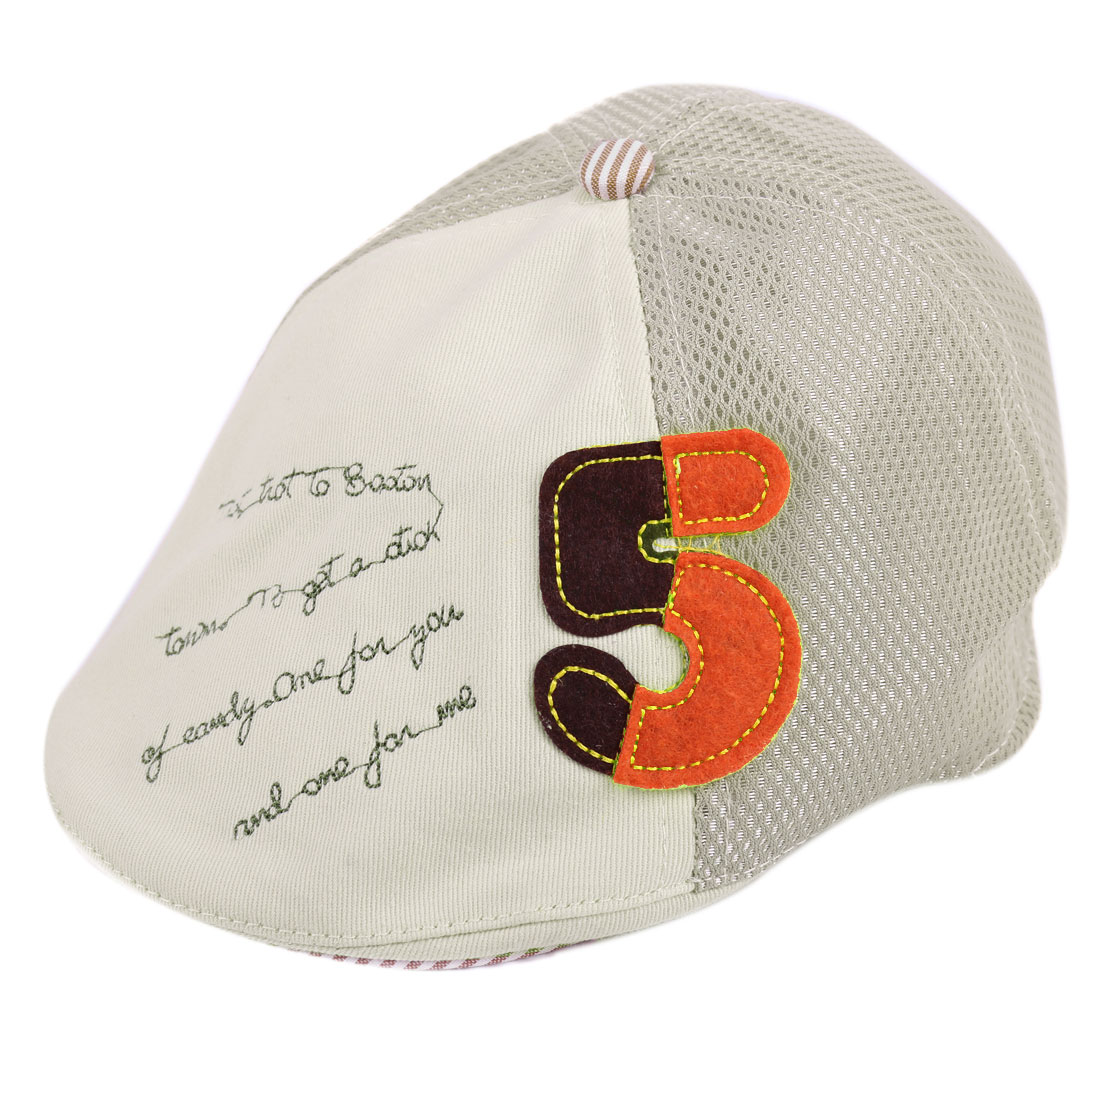 Kids Embroidery Letters Covered Visor Baseball Cap Beige Light Gray